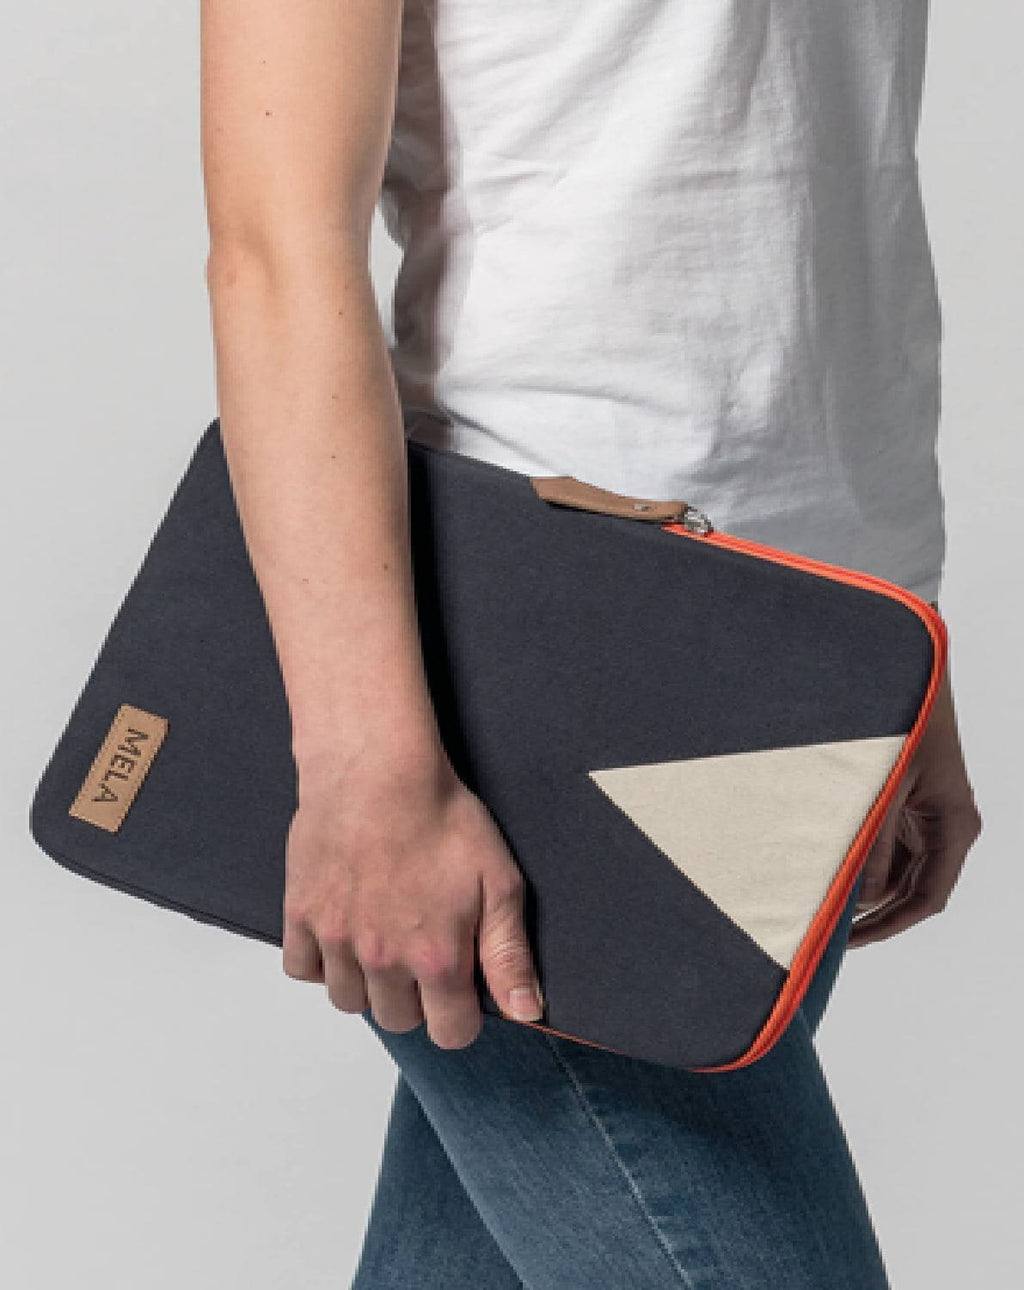 Laptop etui - noia.shop